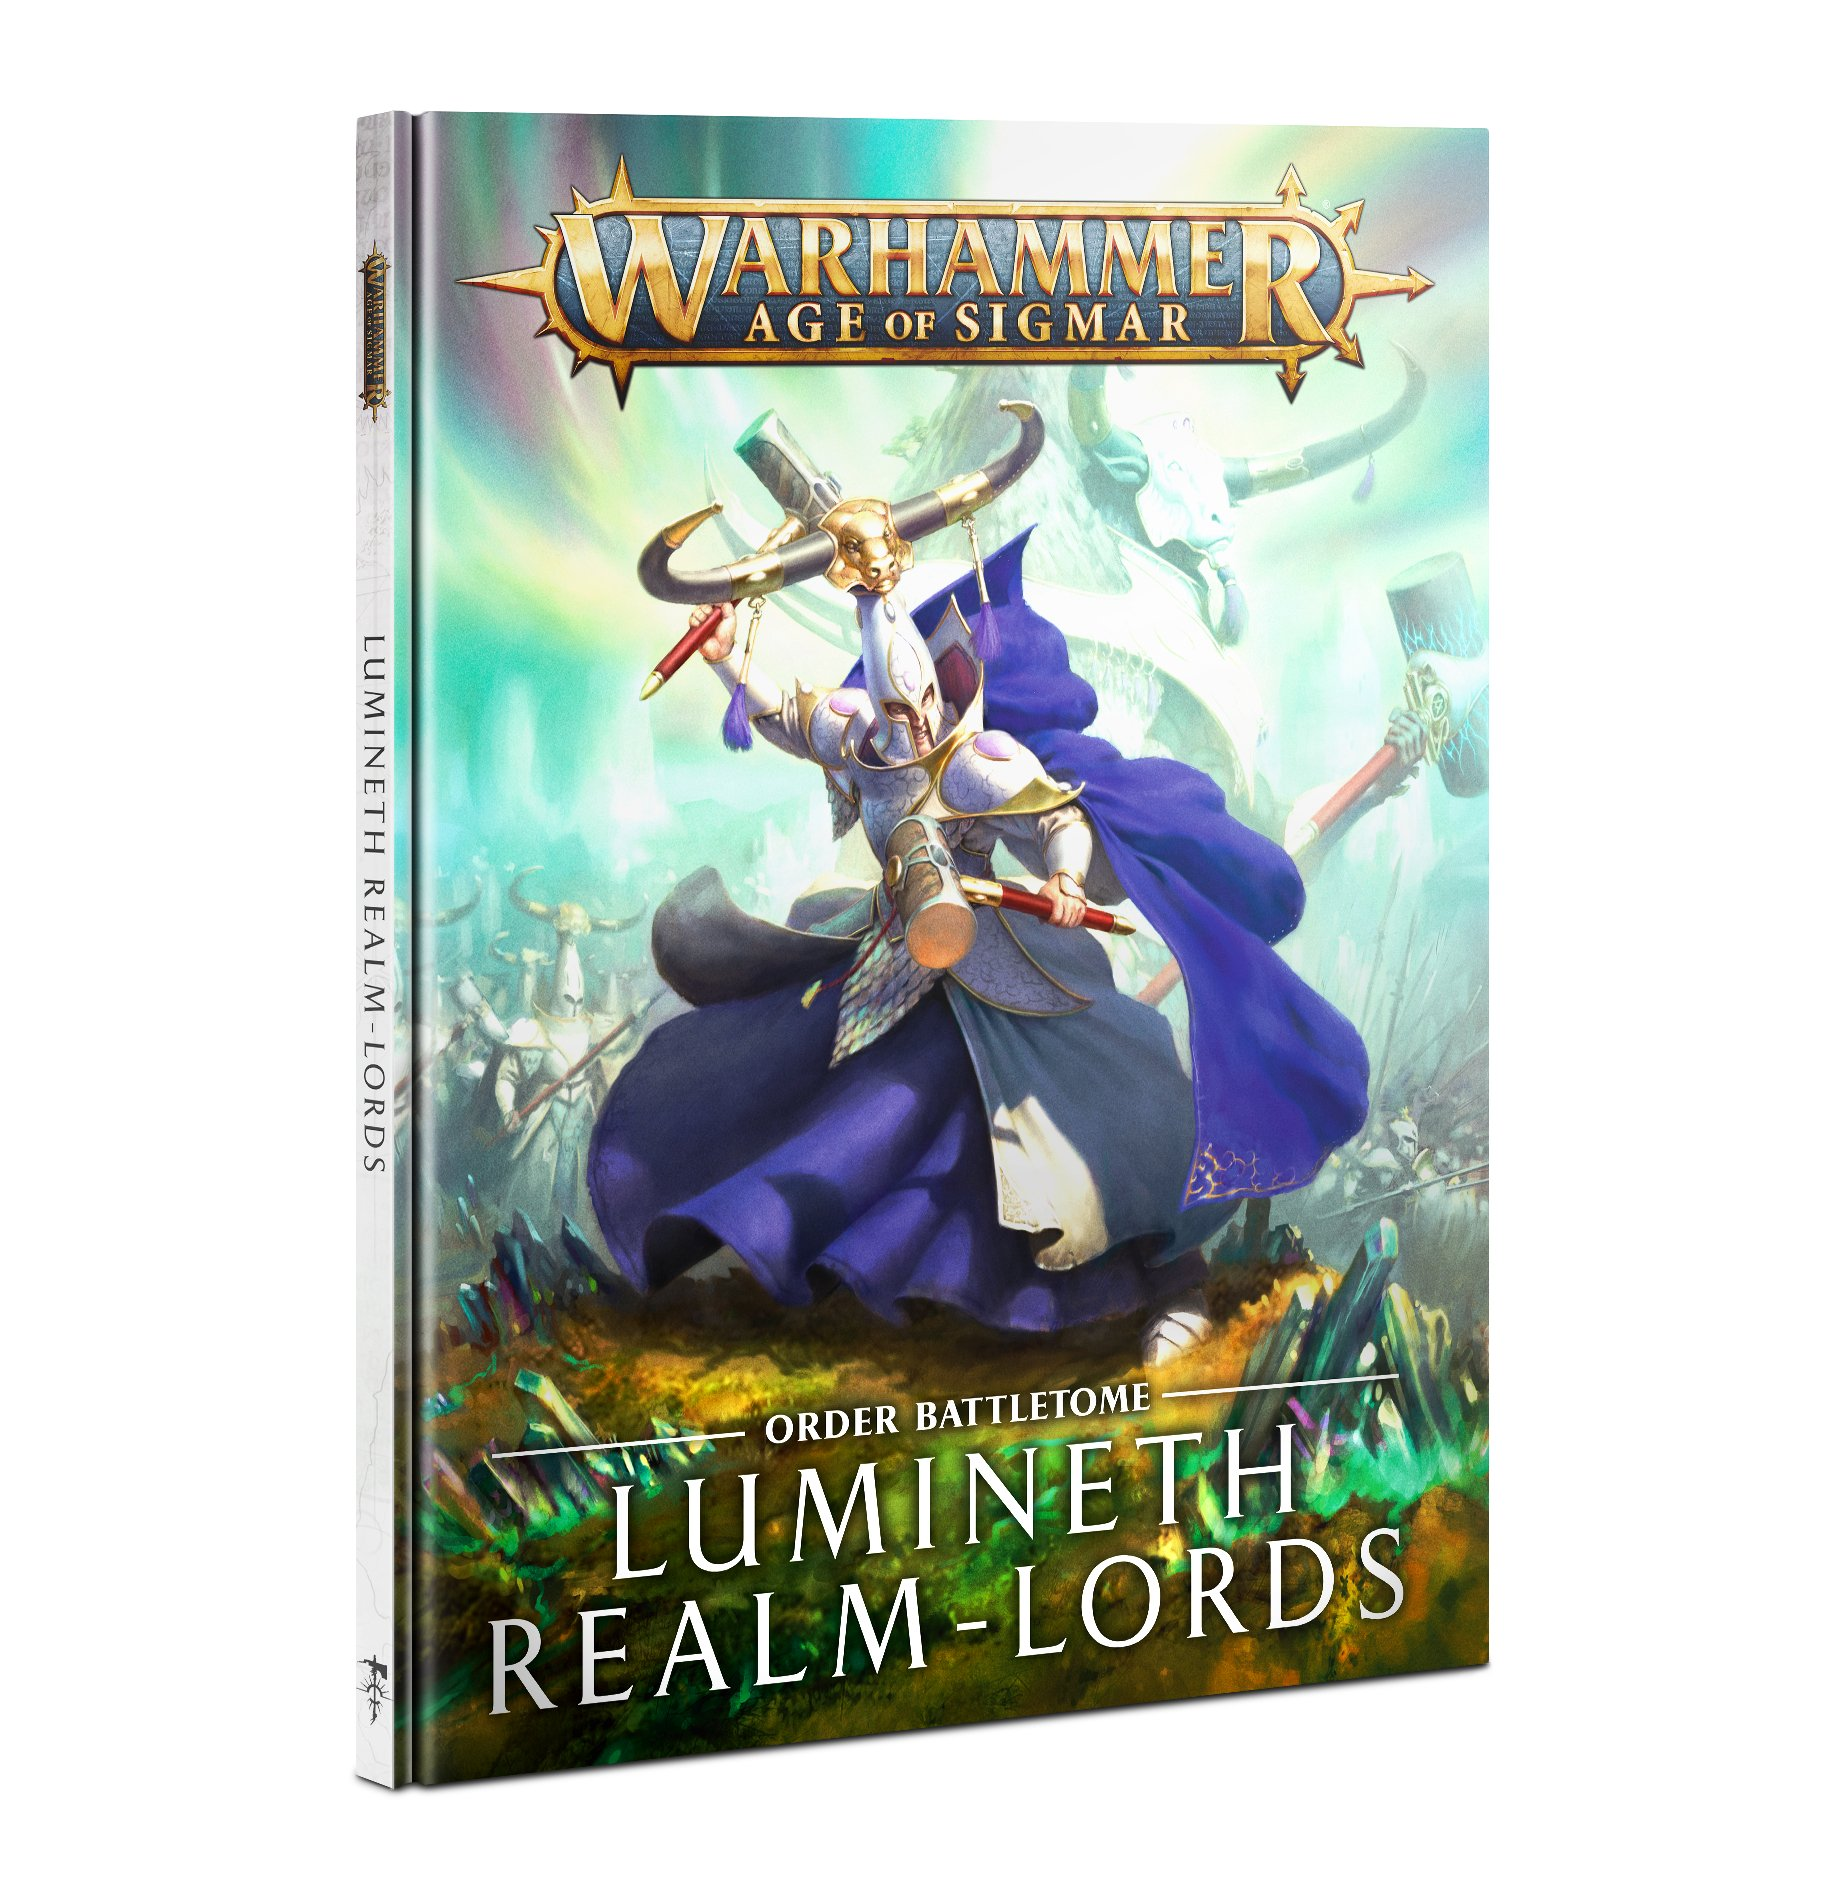 Warhammer Age of Sigmar: Battletome: Lumineth Realm-lords (HB)